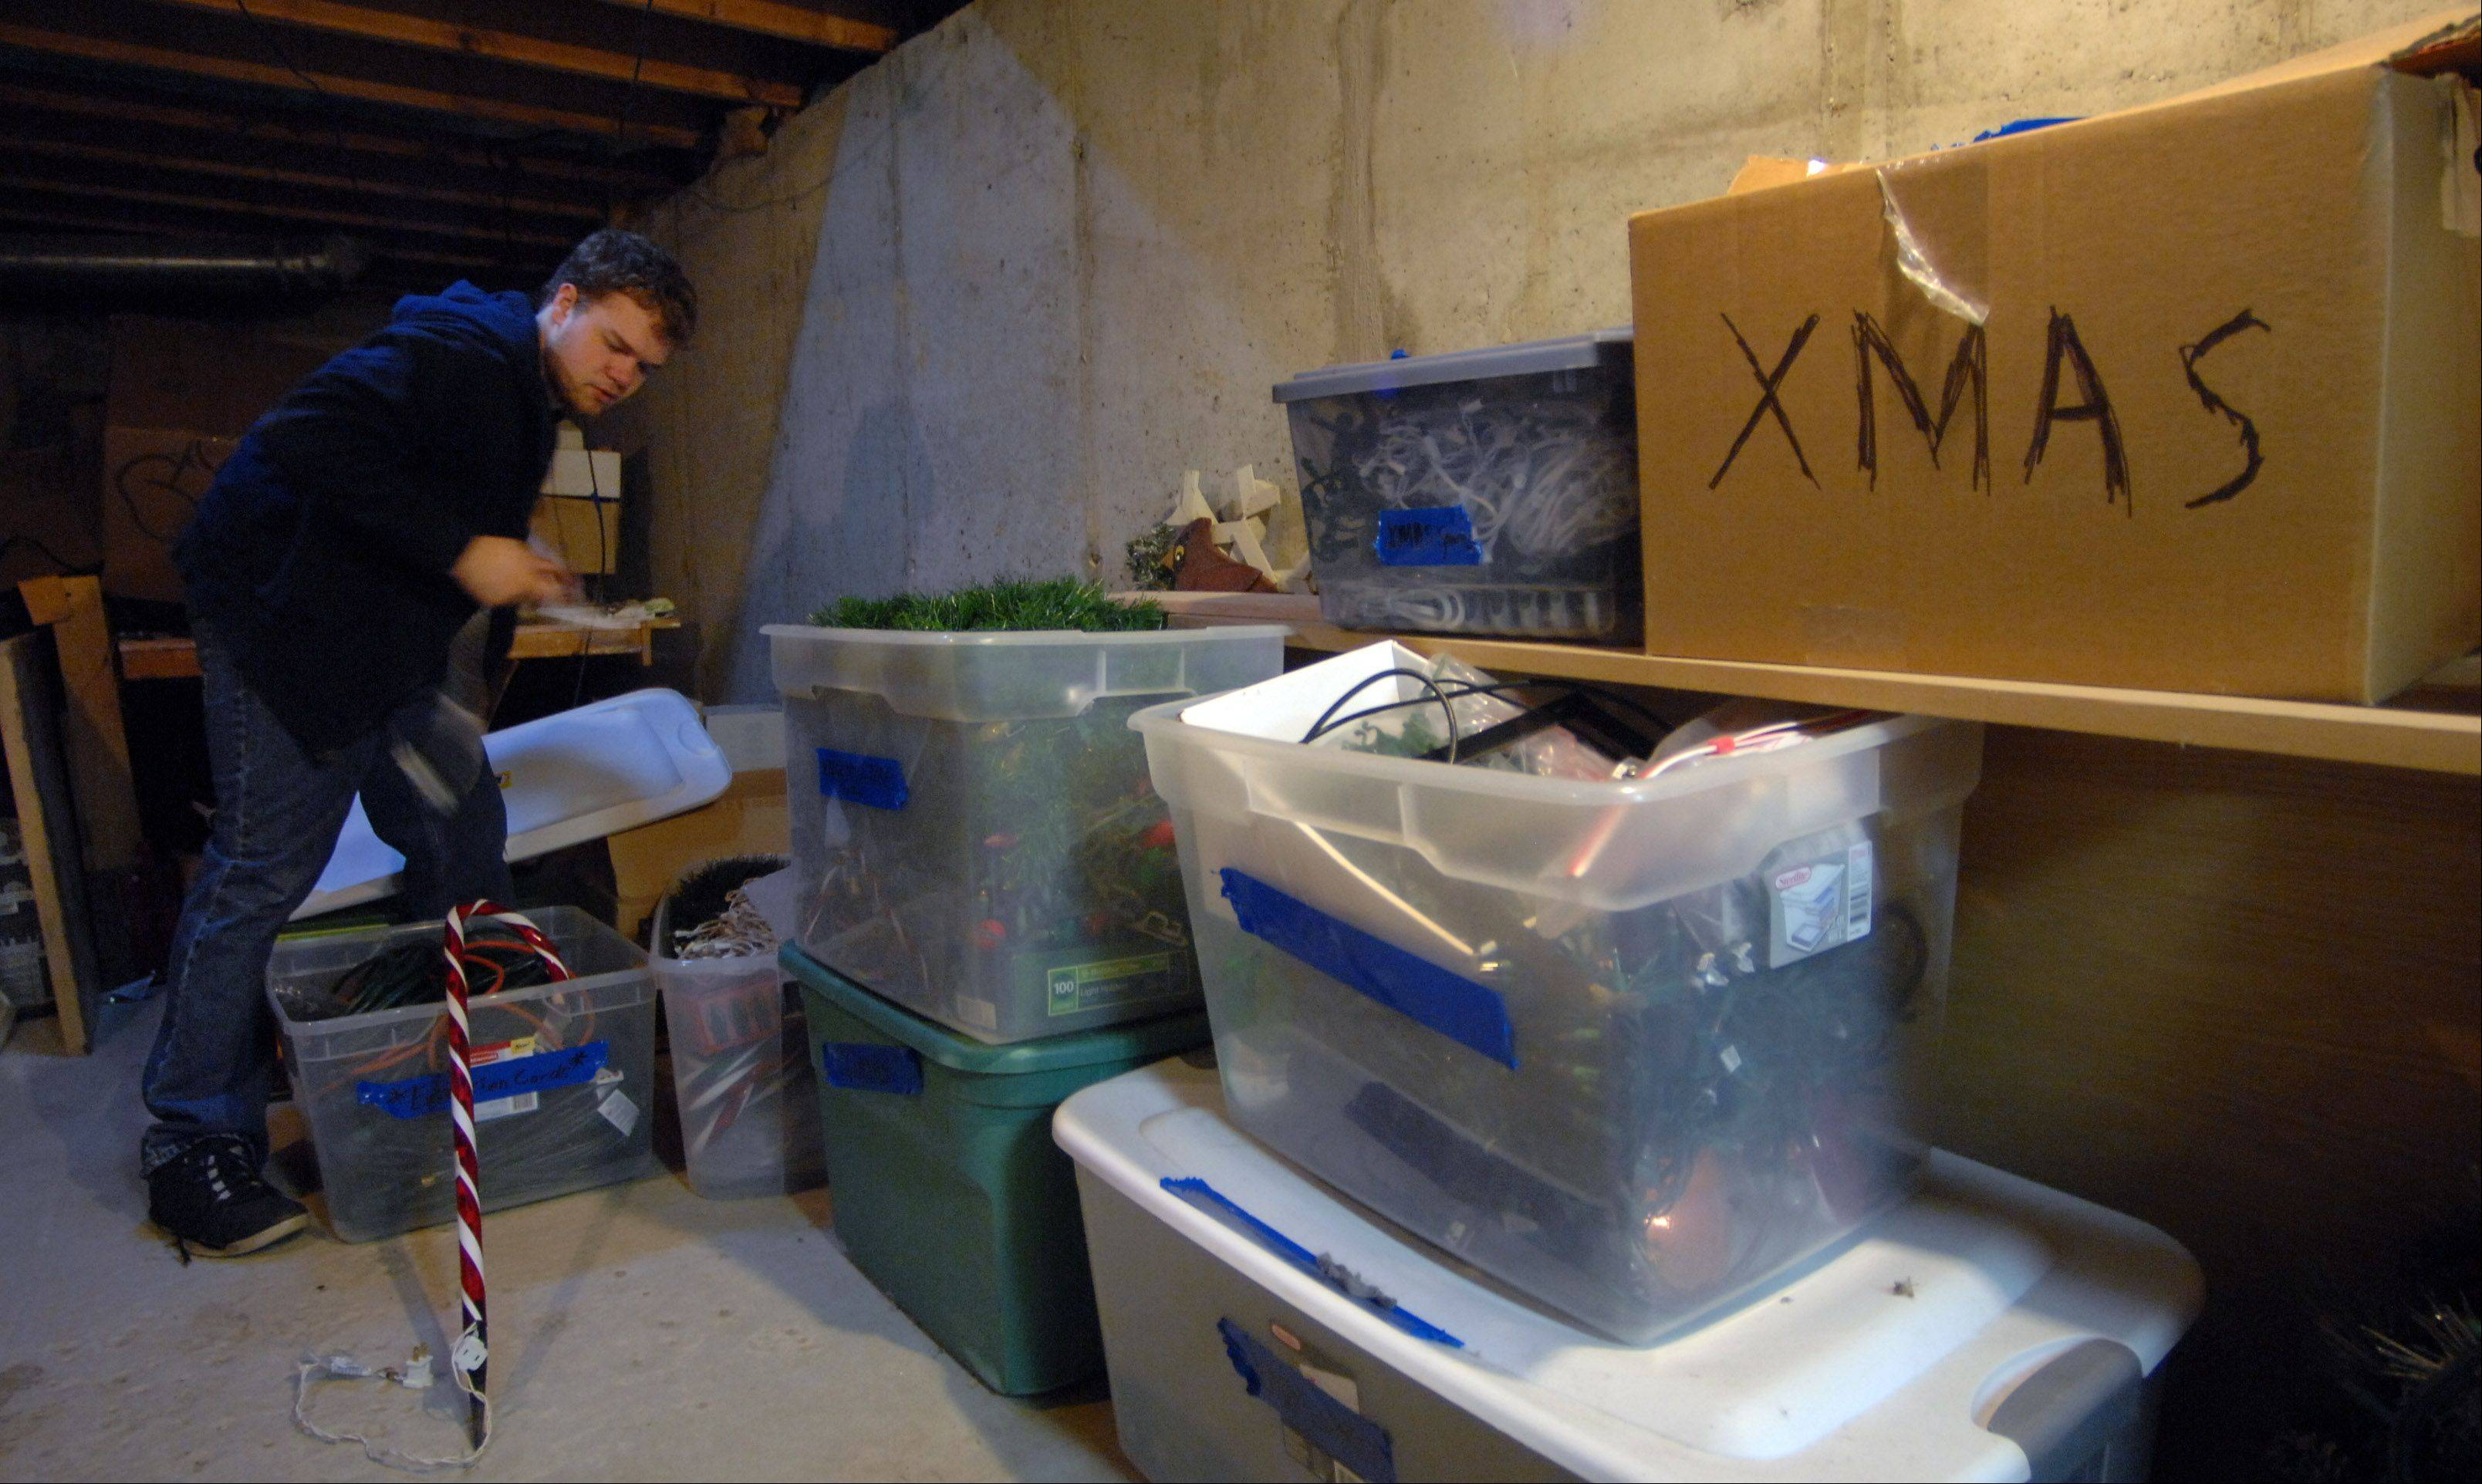 Germann unpacks his Christmas lights from his storage area in the basement.